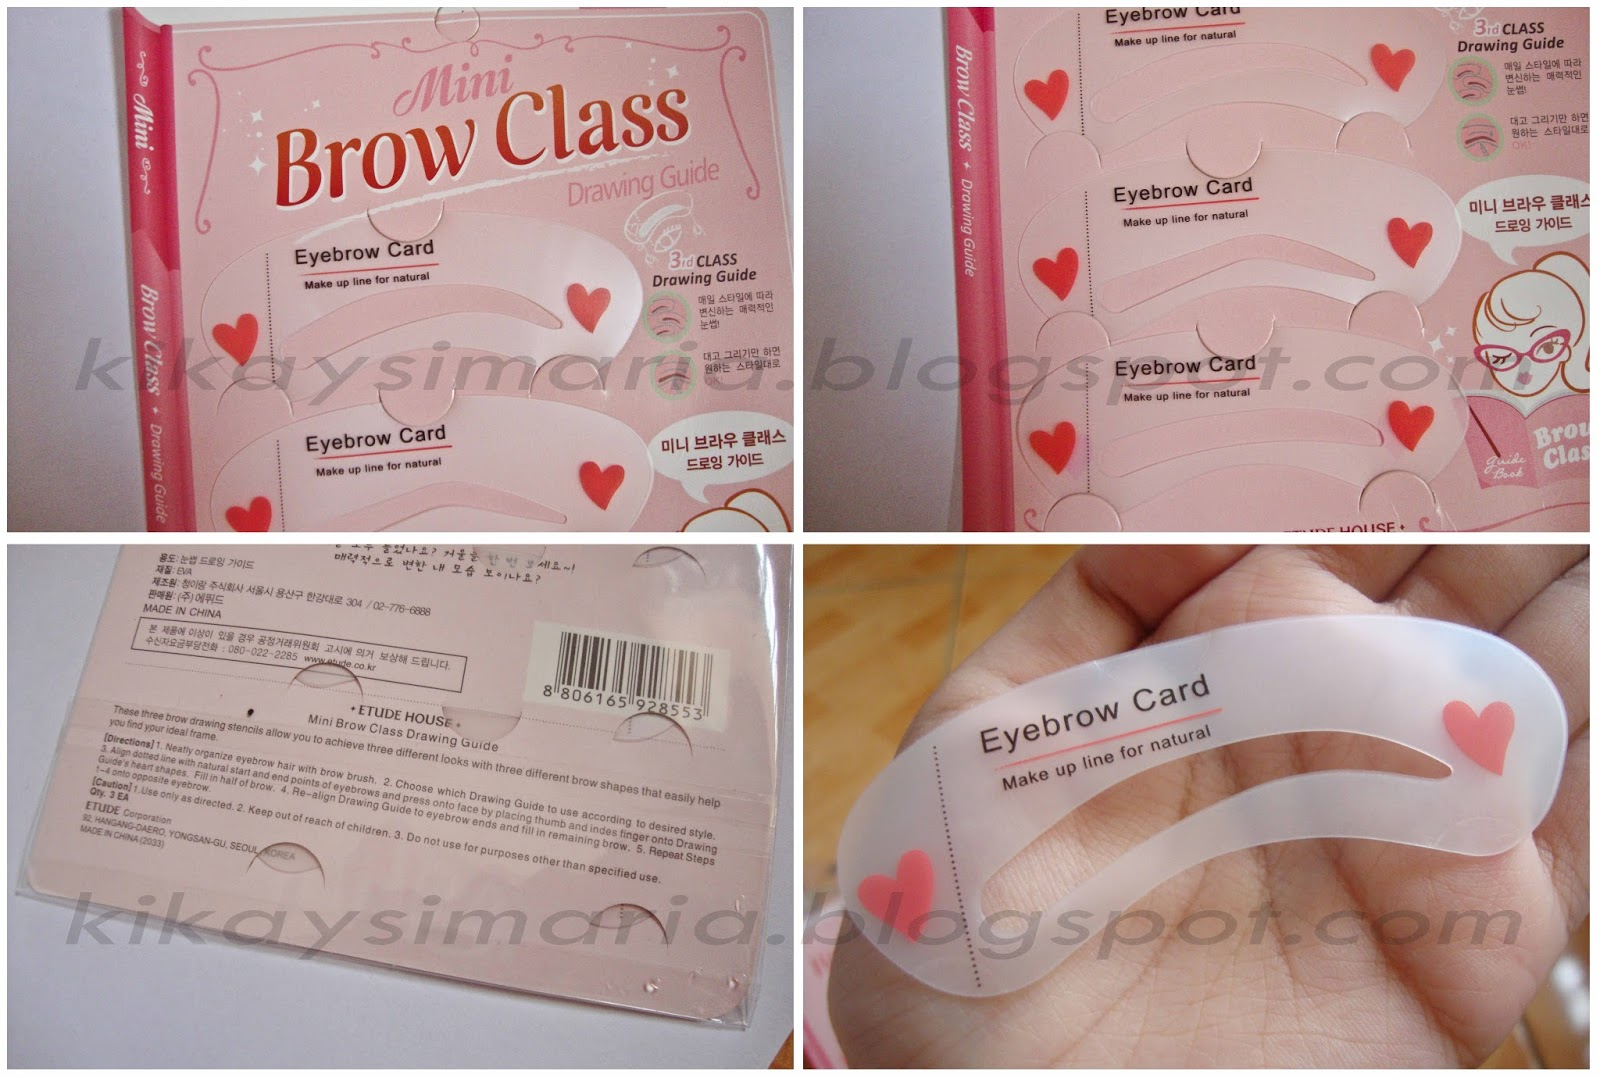 KIKAYSIMARIA: How to Shape and Groom Eyebrows using Stencils